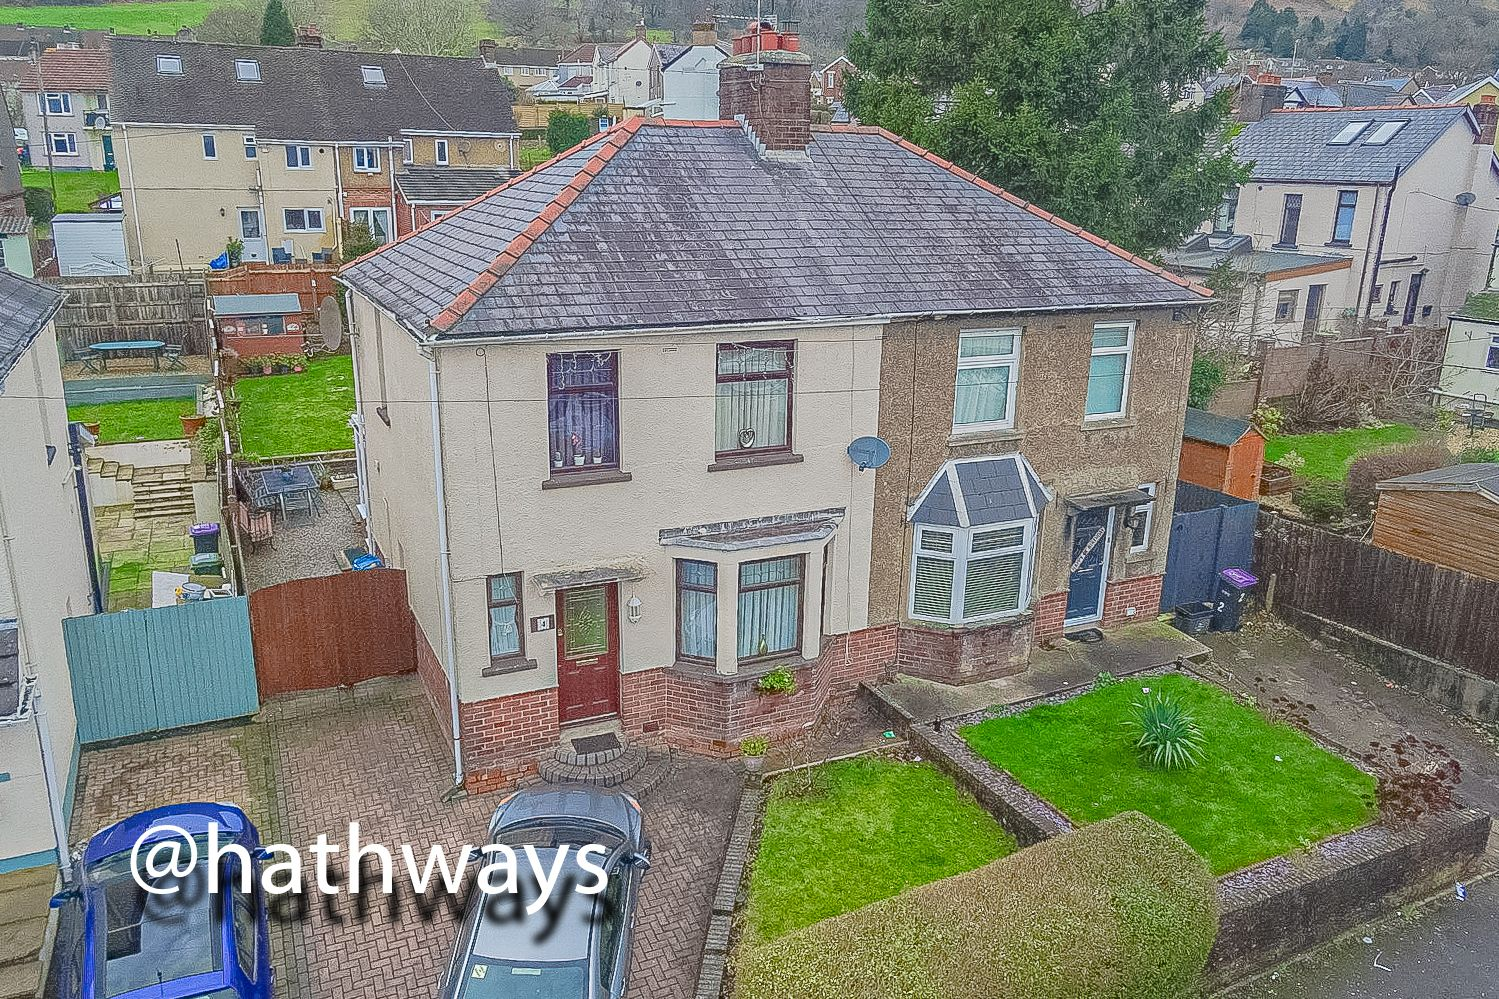 3 bed house for sale in South Avenue, NP4